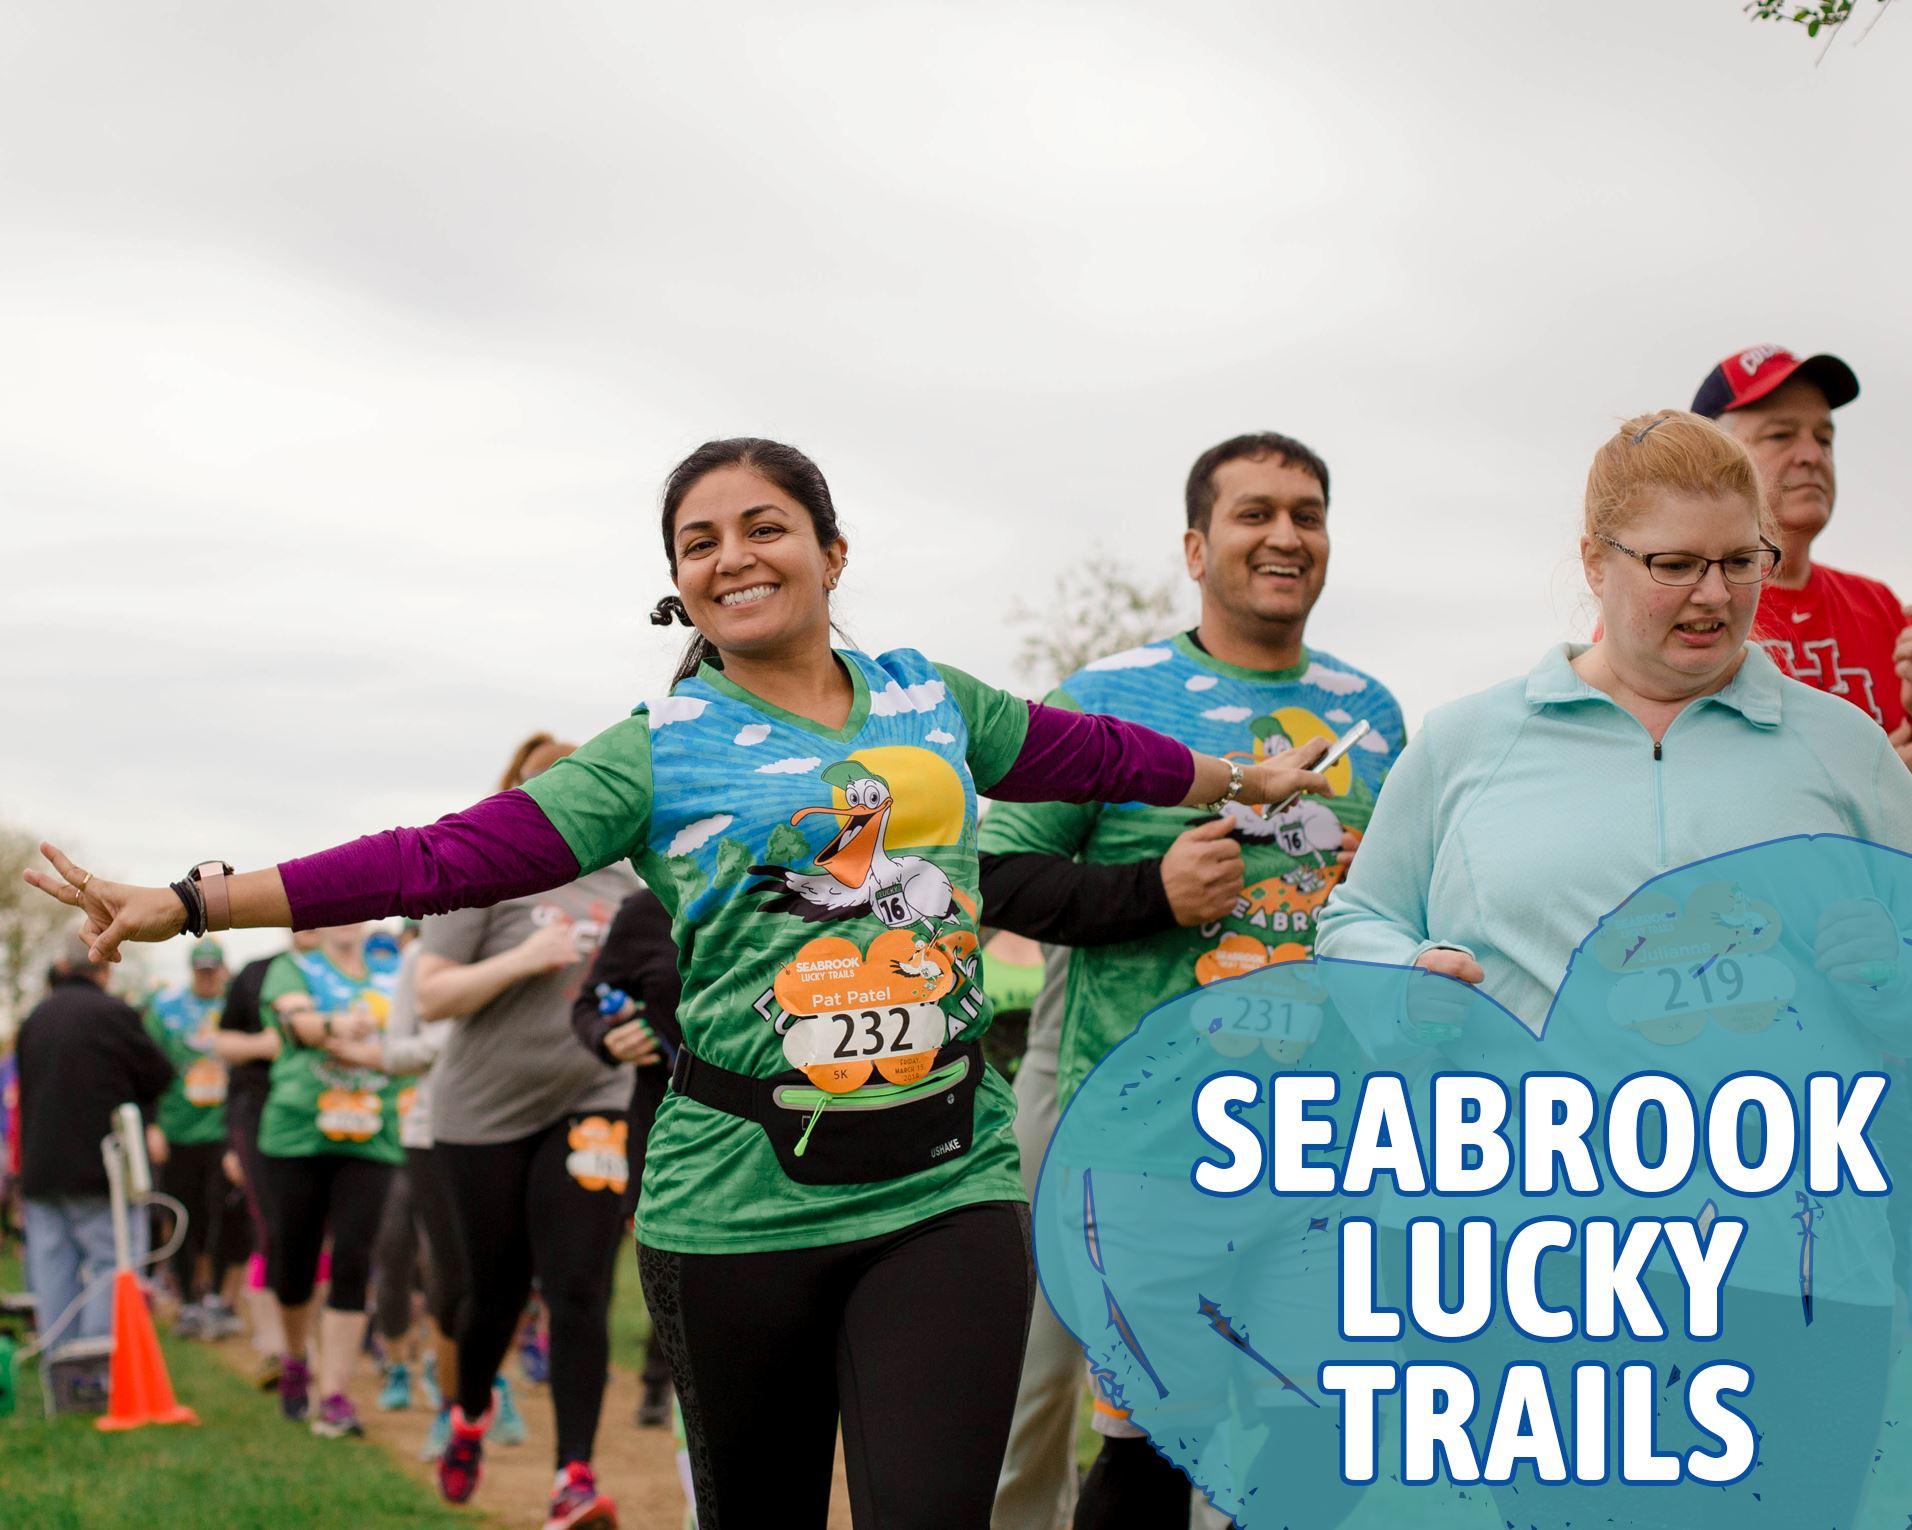 Seabrook Lucky Trails